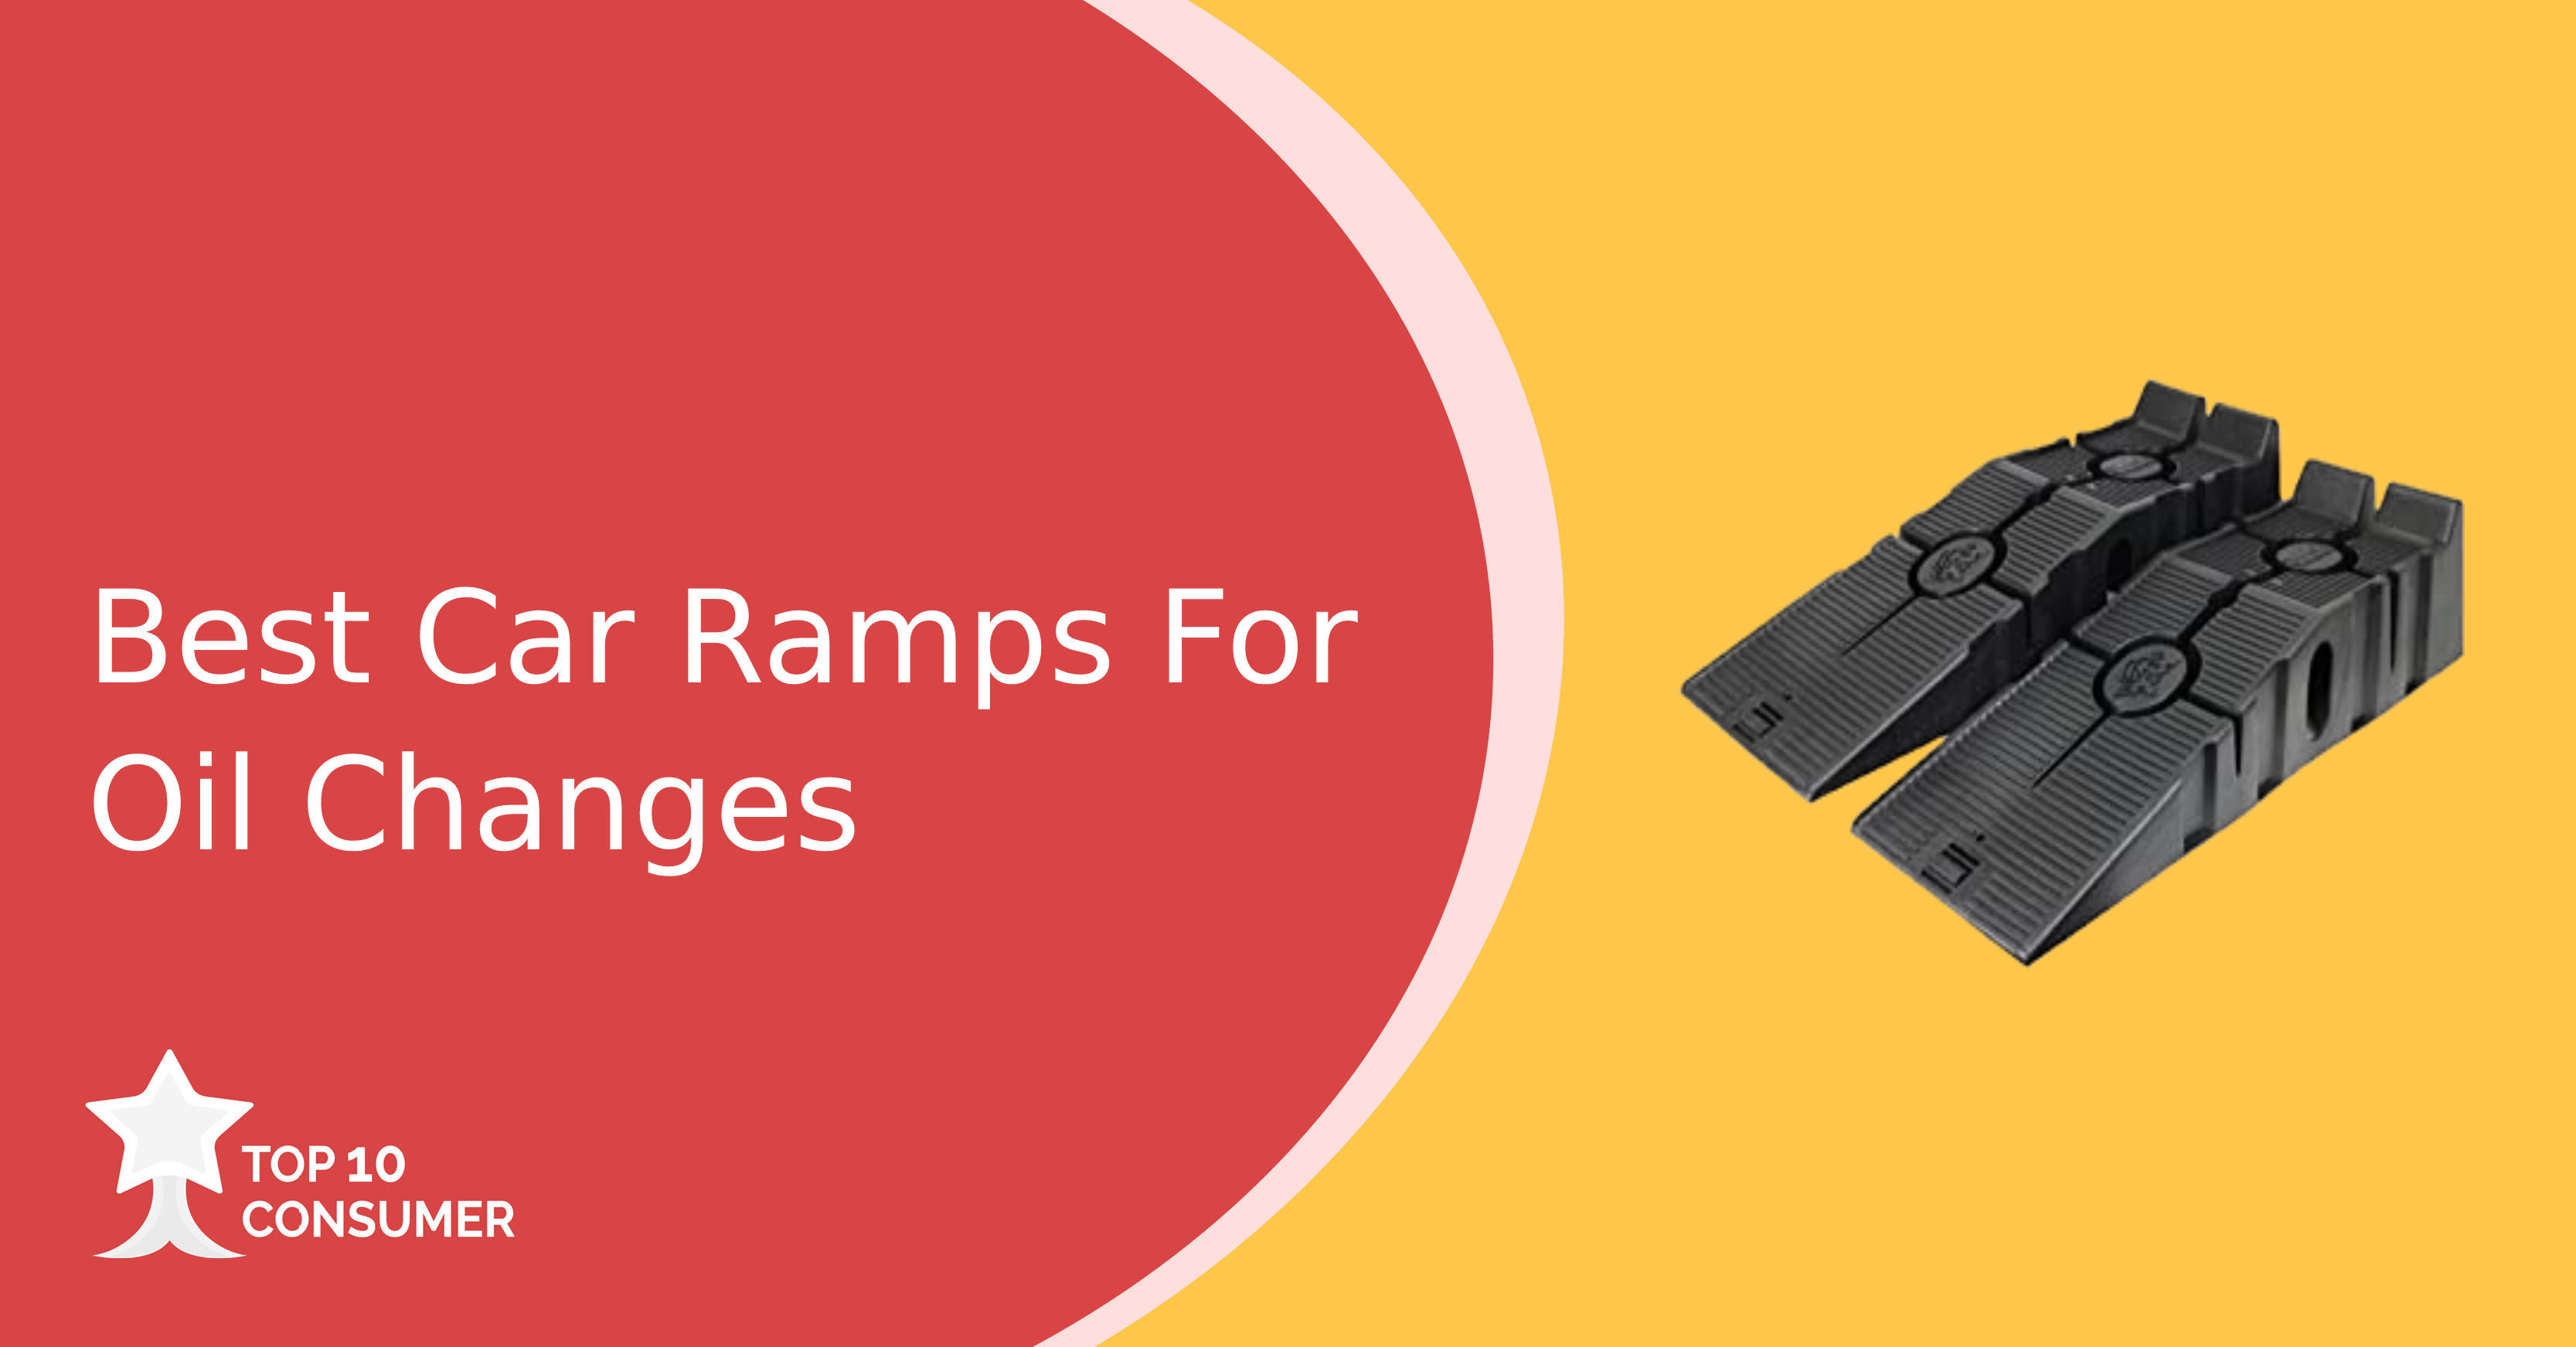 Best Car Ramps For Oil Changes